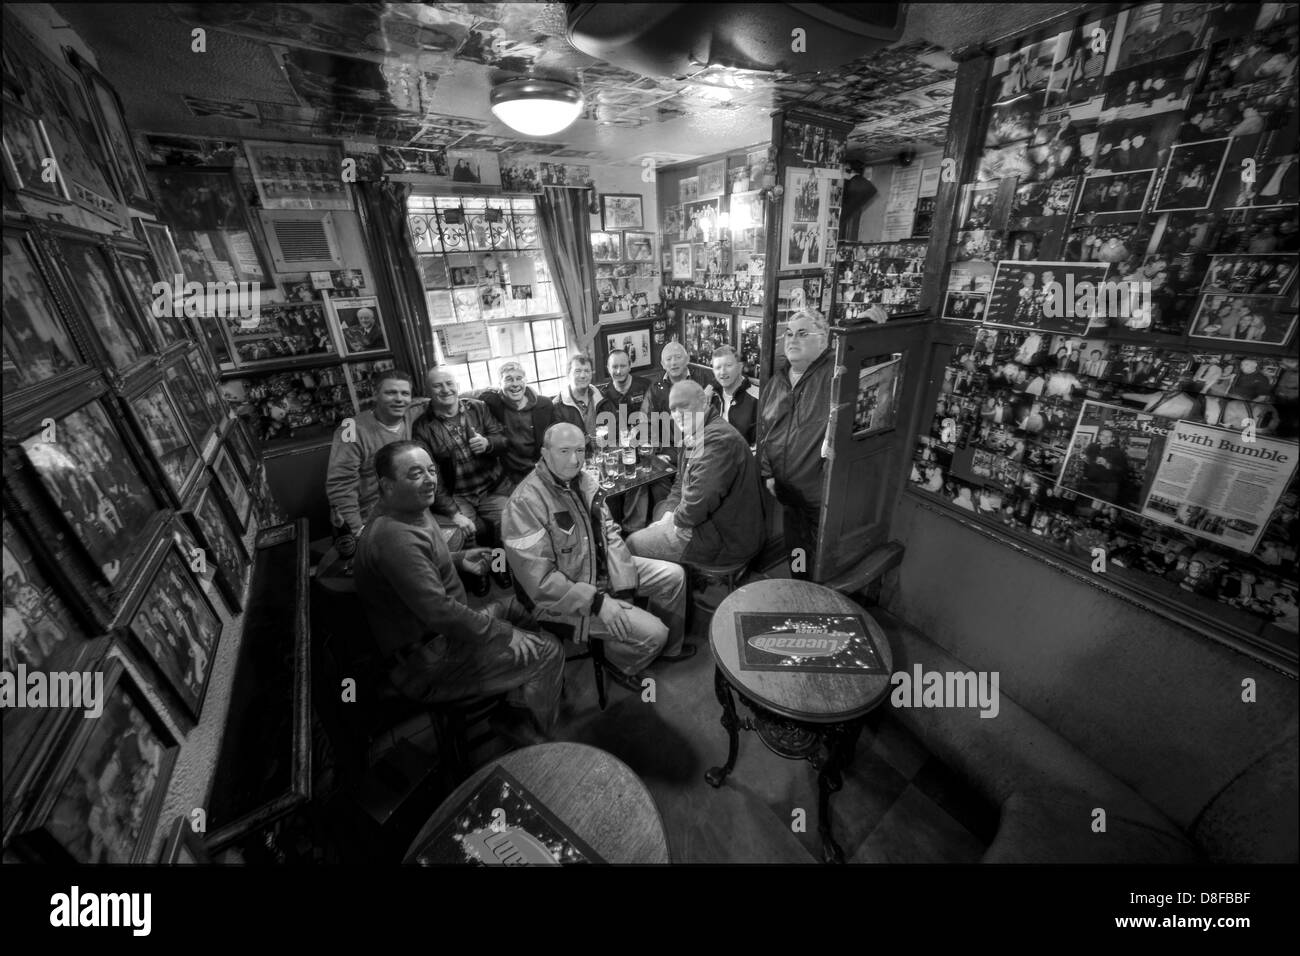 Circus Tavern, Manchester, 11 Dubliners in the smallest pub in the city England UK - Stock Image